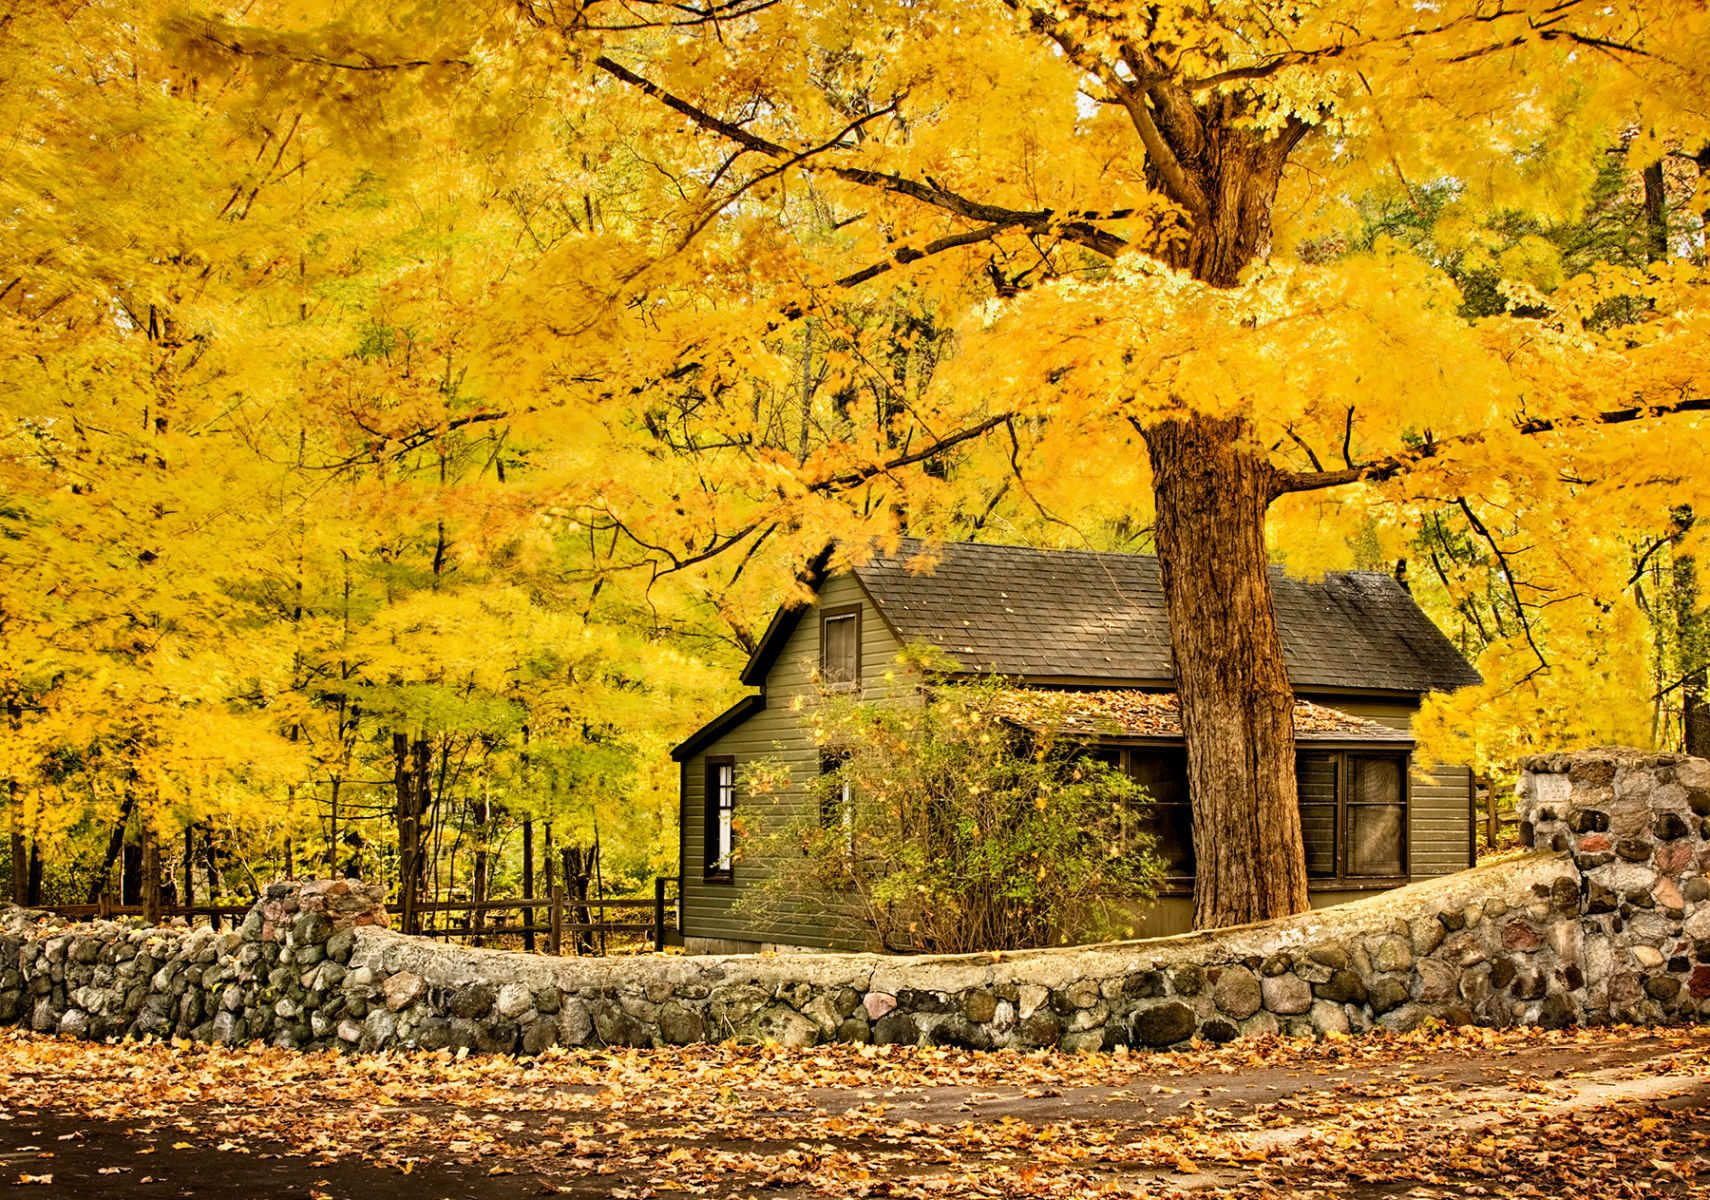 10510_fall_amy_belle_lake_rd.jpg